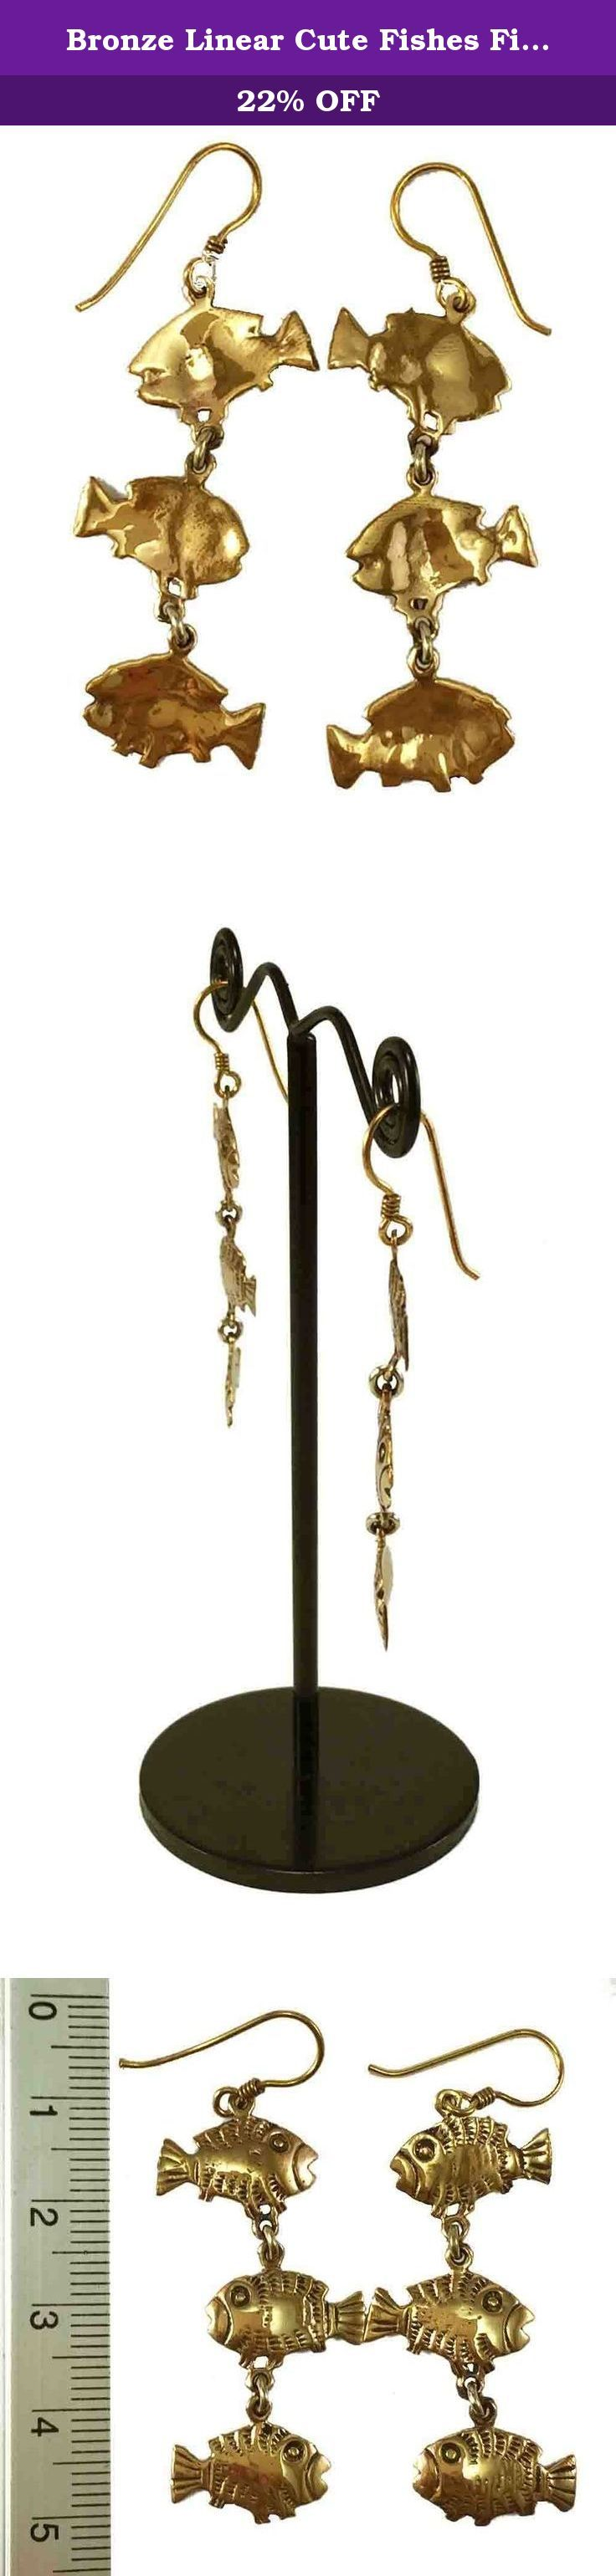 Bronze Linear Cute Fishes Fish Hook Drop Dangle Earrings Vintage Thailand Jewelry. -Good quality Bronze. -100% Satisfaction Guarantee. -Delivery Lead times: 14-21 days -Actual color may be vary from the pictures due to lighting or monitor. -Scaled picture may have some tolerance.